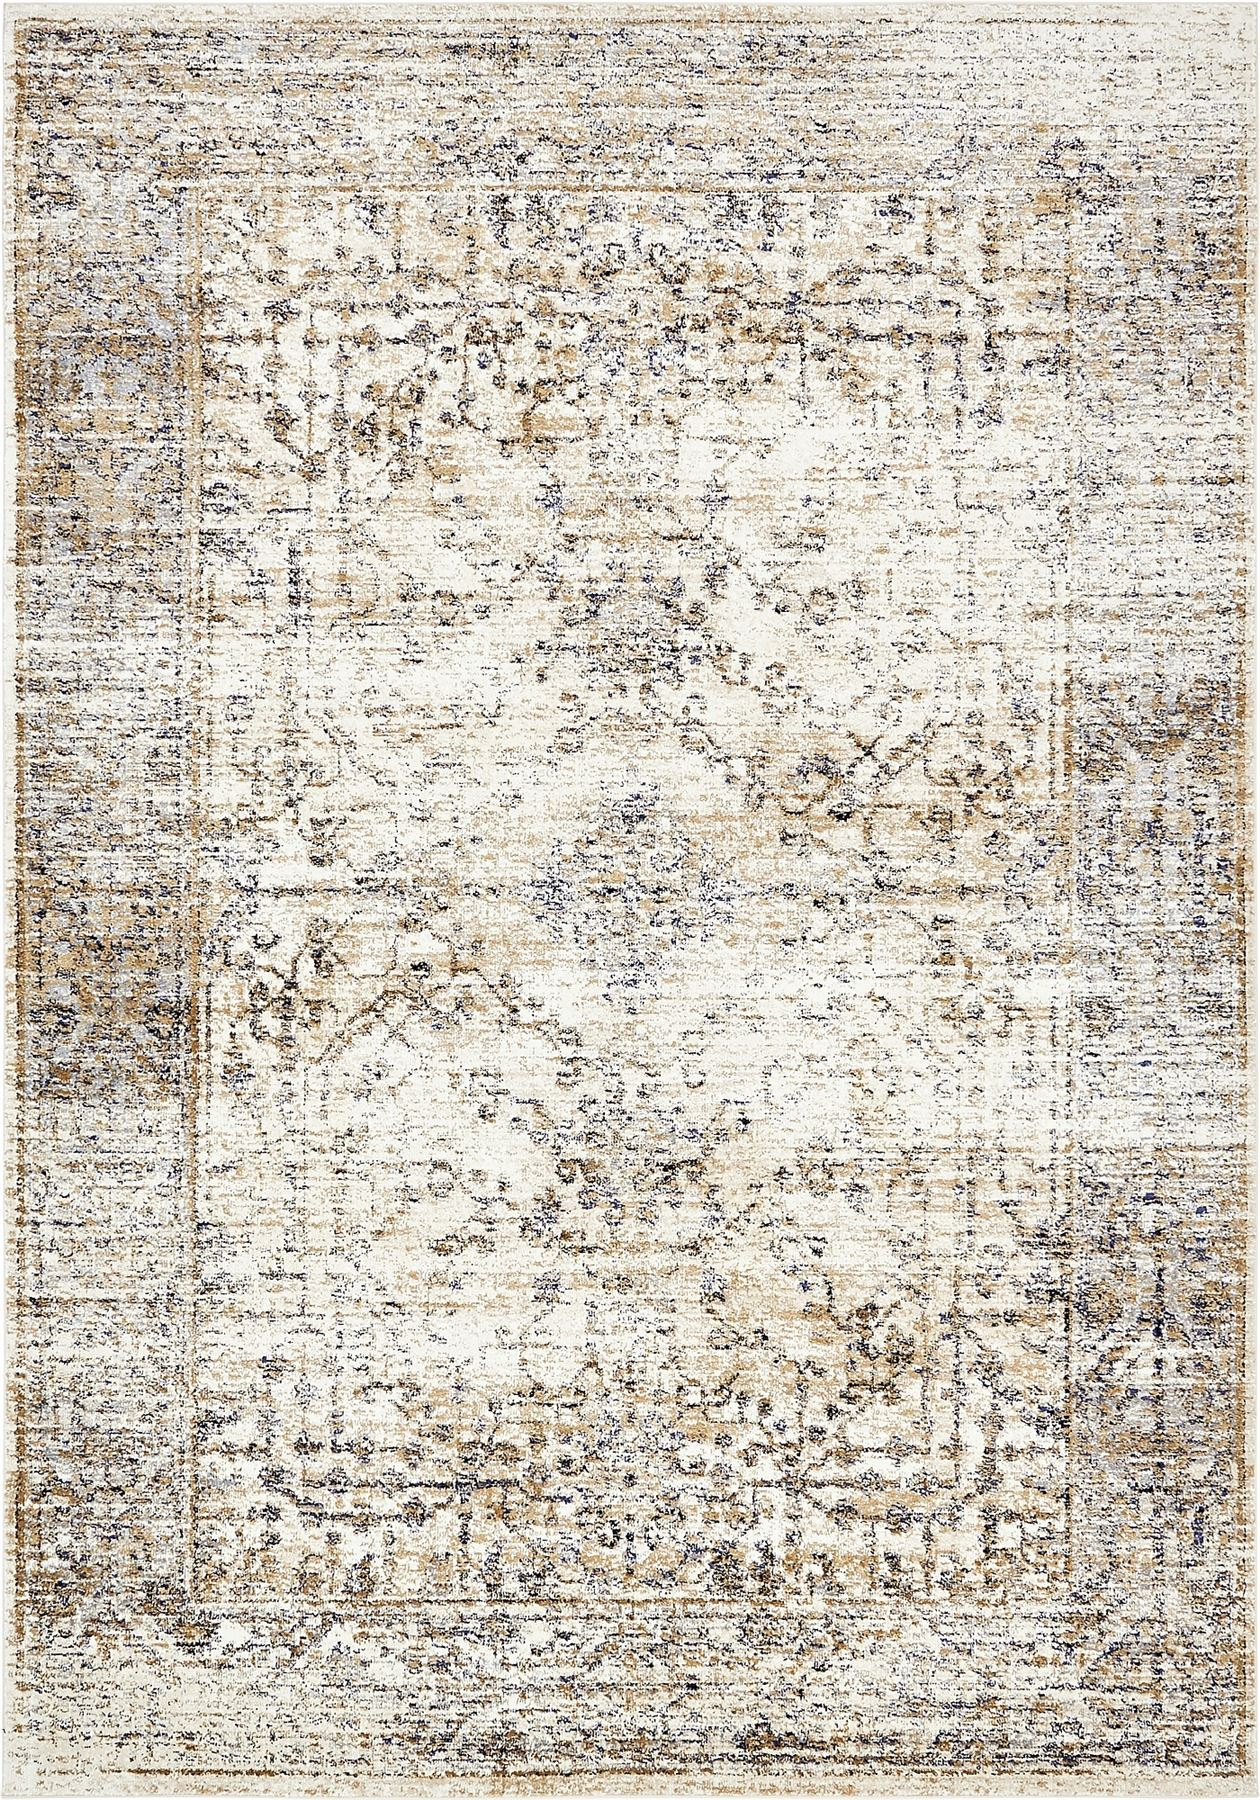 New traditional rugs vintage style carpets area rug floor for Vintage style area rugs